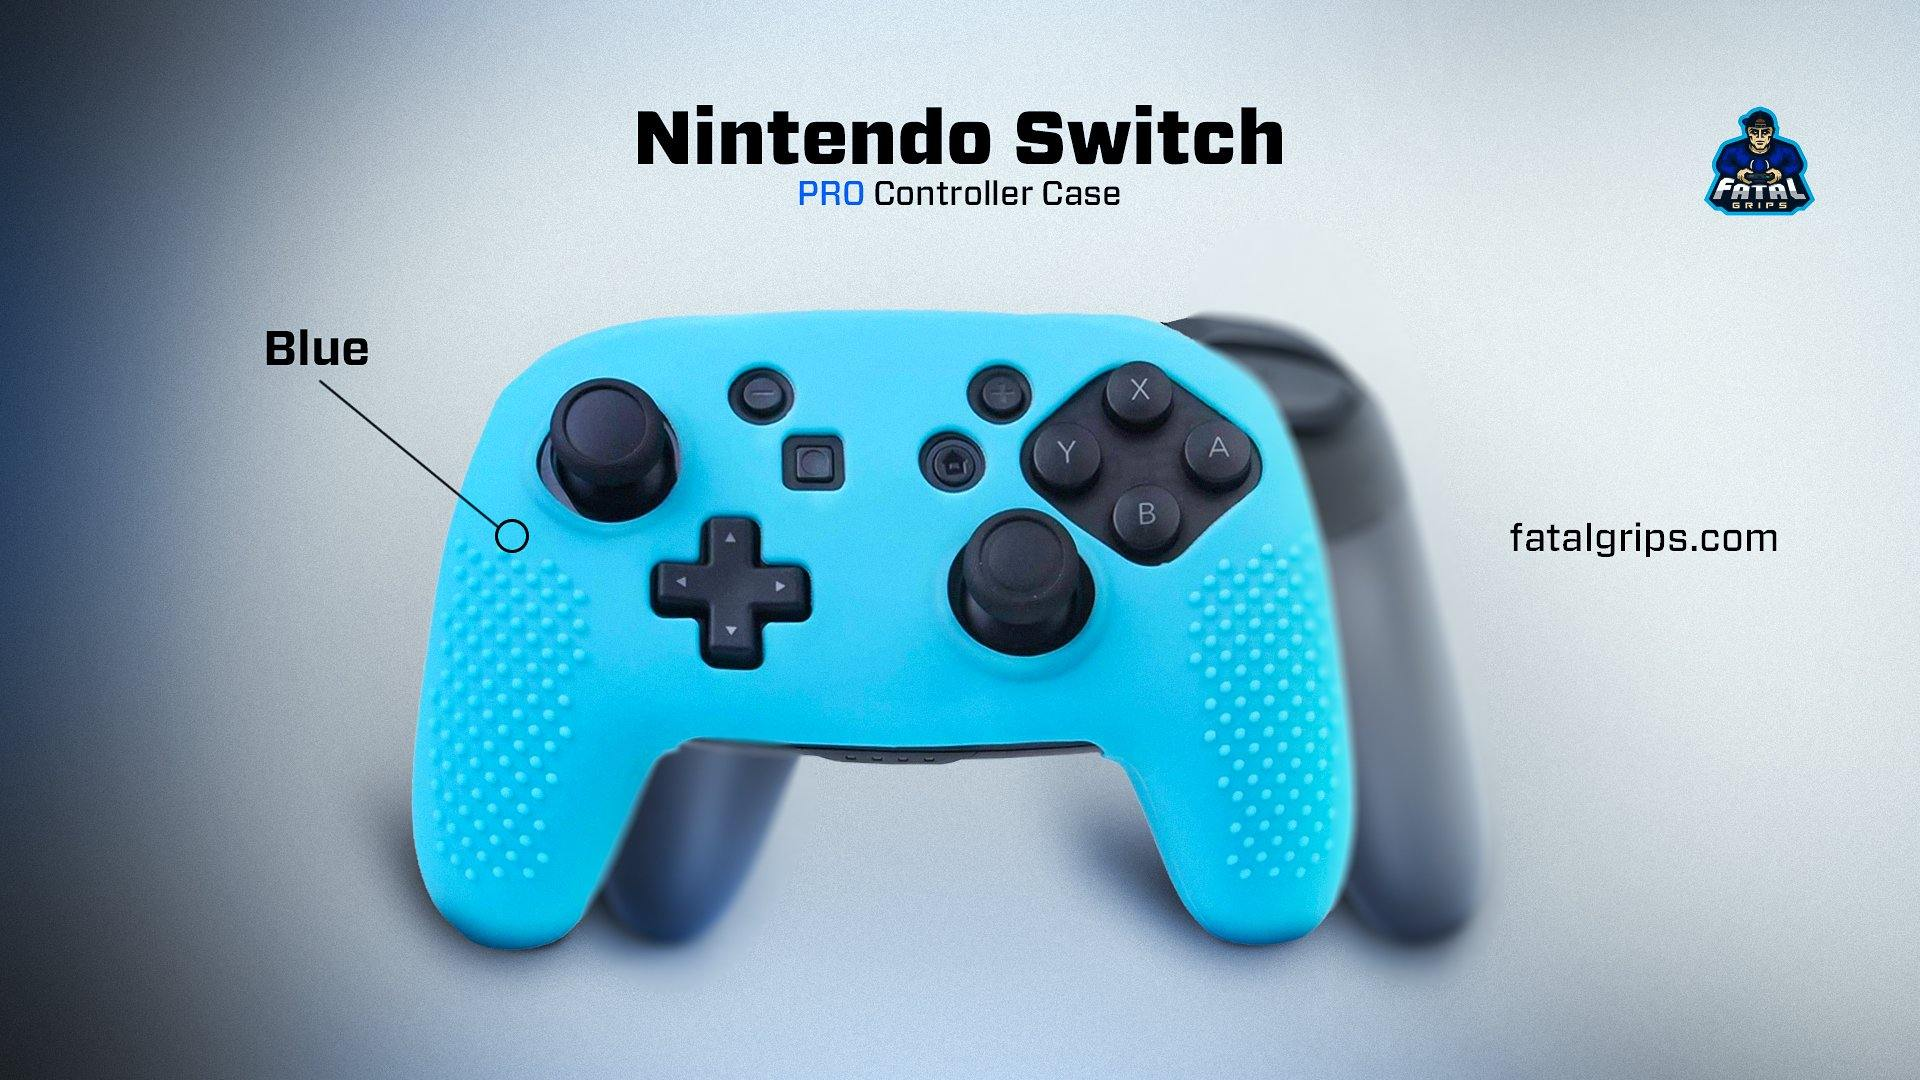 Nintendo Switch Pro Controller Case (Blue) - fatalgrips